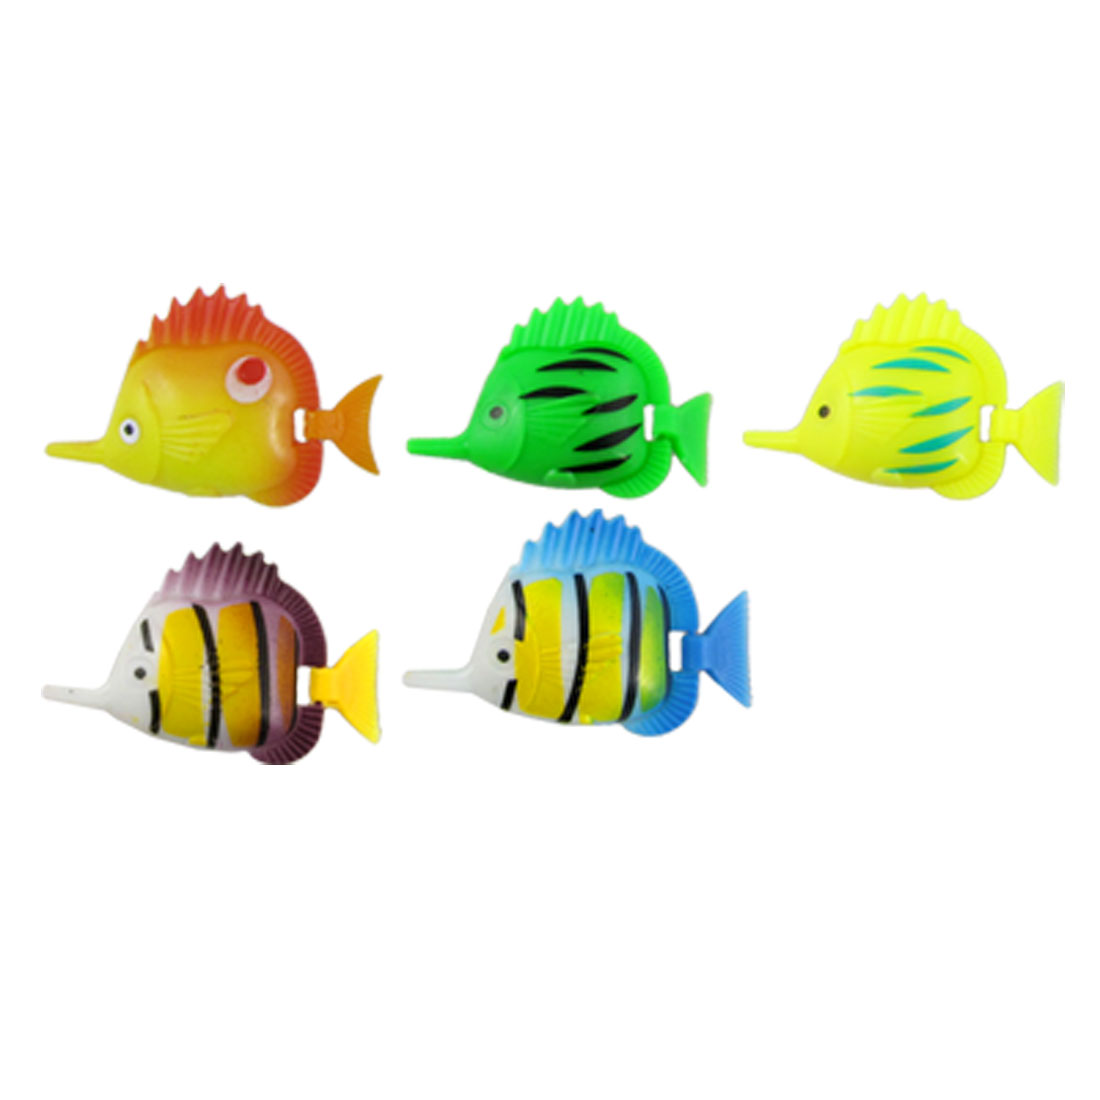 Colorful Flexible Tail Tropical Fish Ornament 5 Pcs for Aquarium Tank